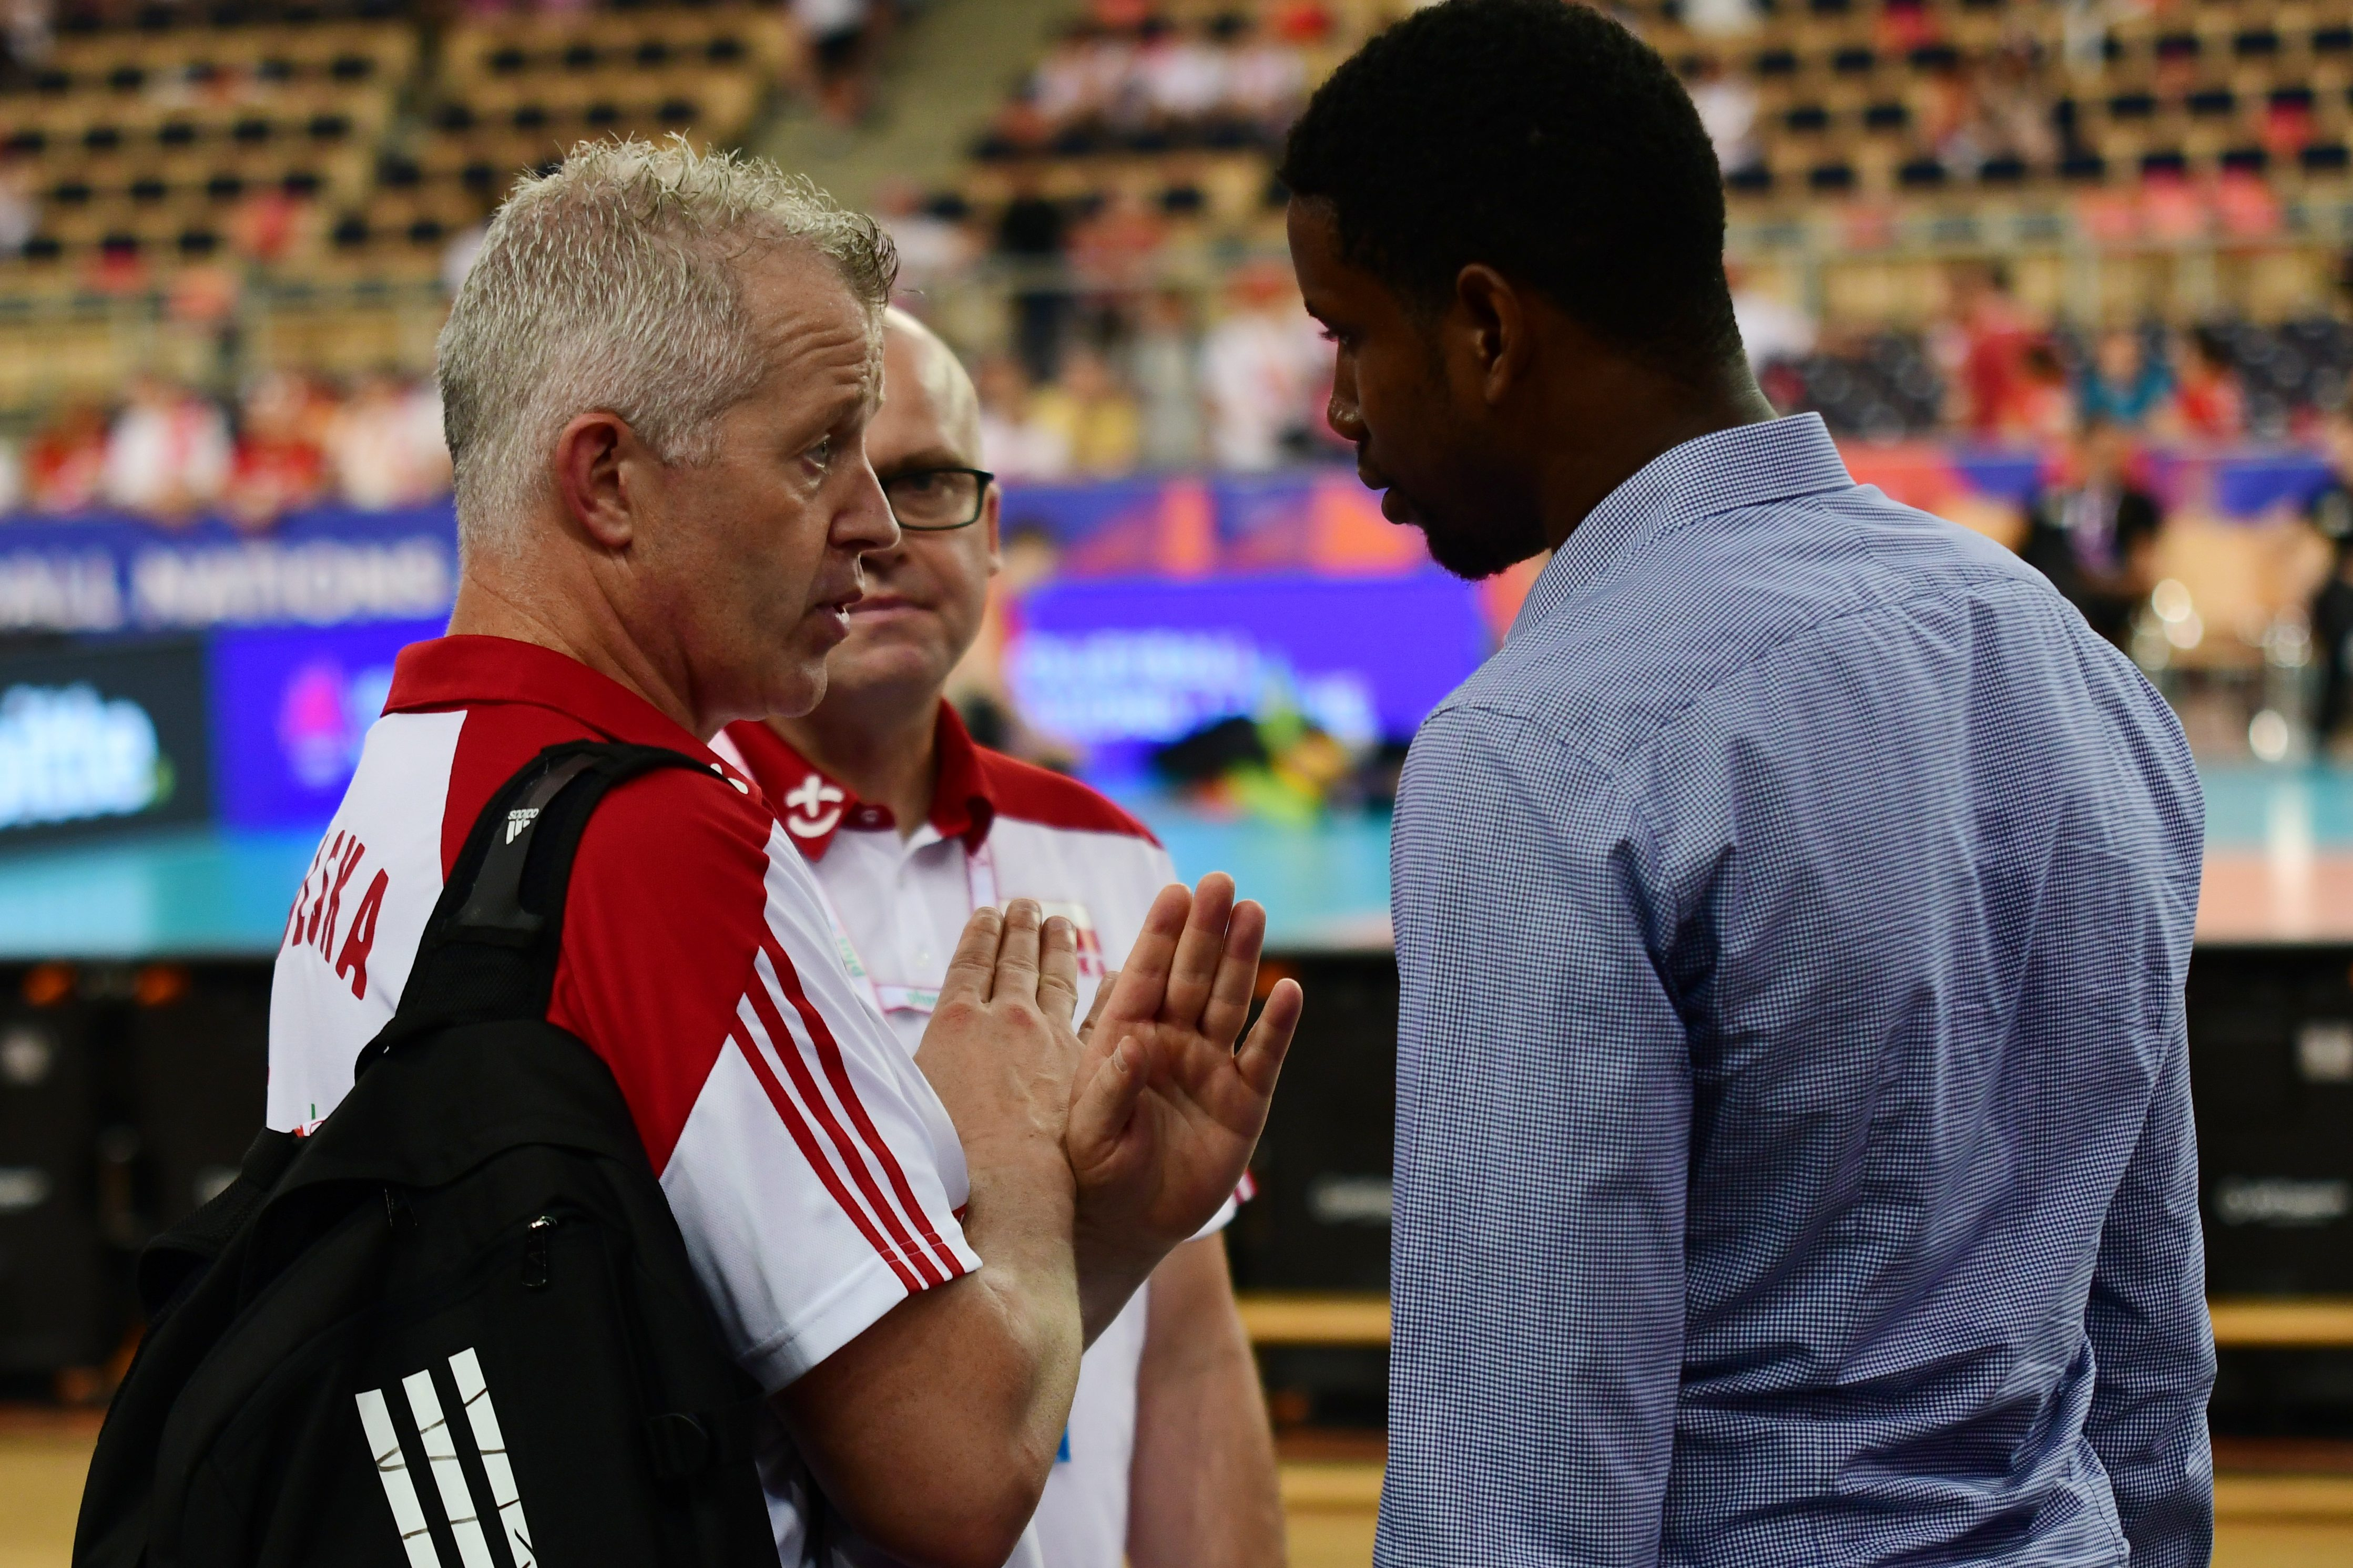 2018.06.01 Lodz Siatkarska Liga Narodow Polska - Francja N/z Vital Heynen, Wilfredo Leon Foto Martyna Szydlowska / Newspix 2018.06.01 Lodz Volleyball Nations League Poland - France Vital Heynen, Wilfredo Leon Credit: Martyna Szydlowska / Newspix --- Newspix.pl *** Local Caption *** www.newspix.pl mail us: info@newspix.pl call us: 0048 022 23 22 222 --- Polish Picture Agency by Ringier Axel Springer Poland